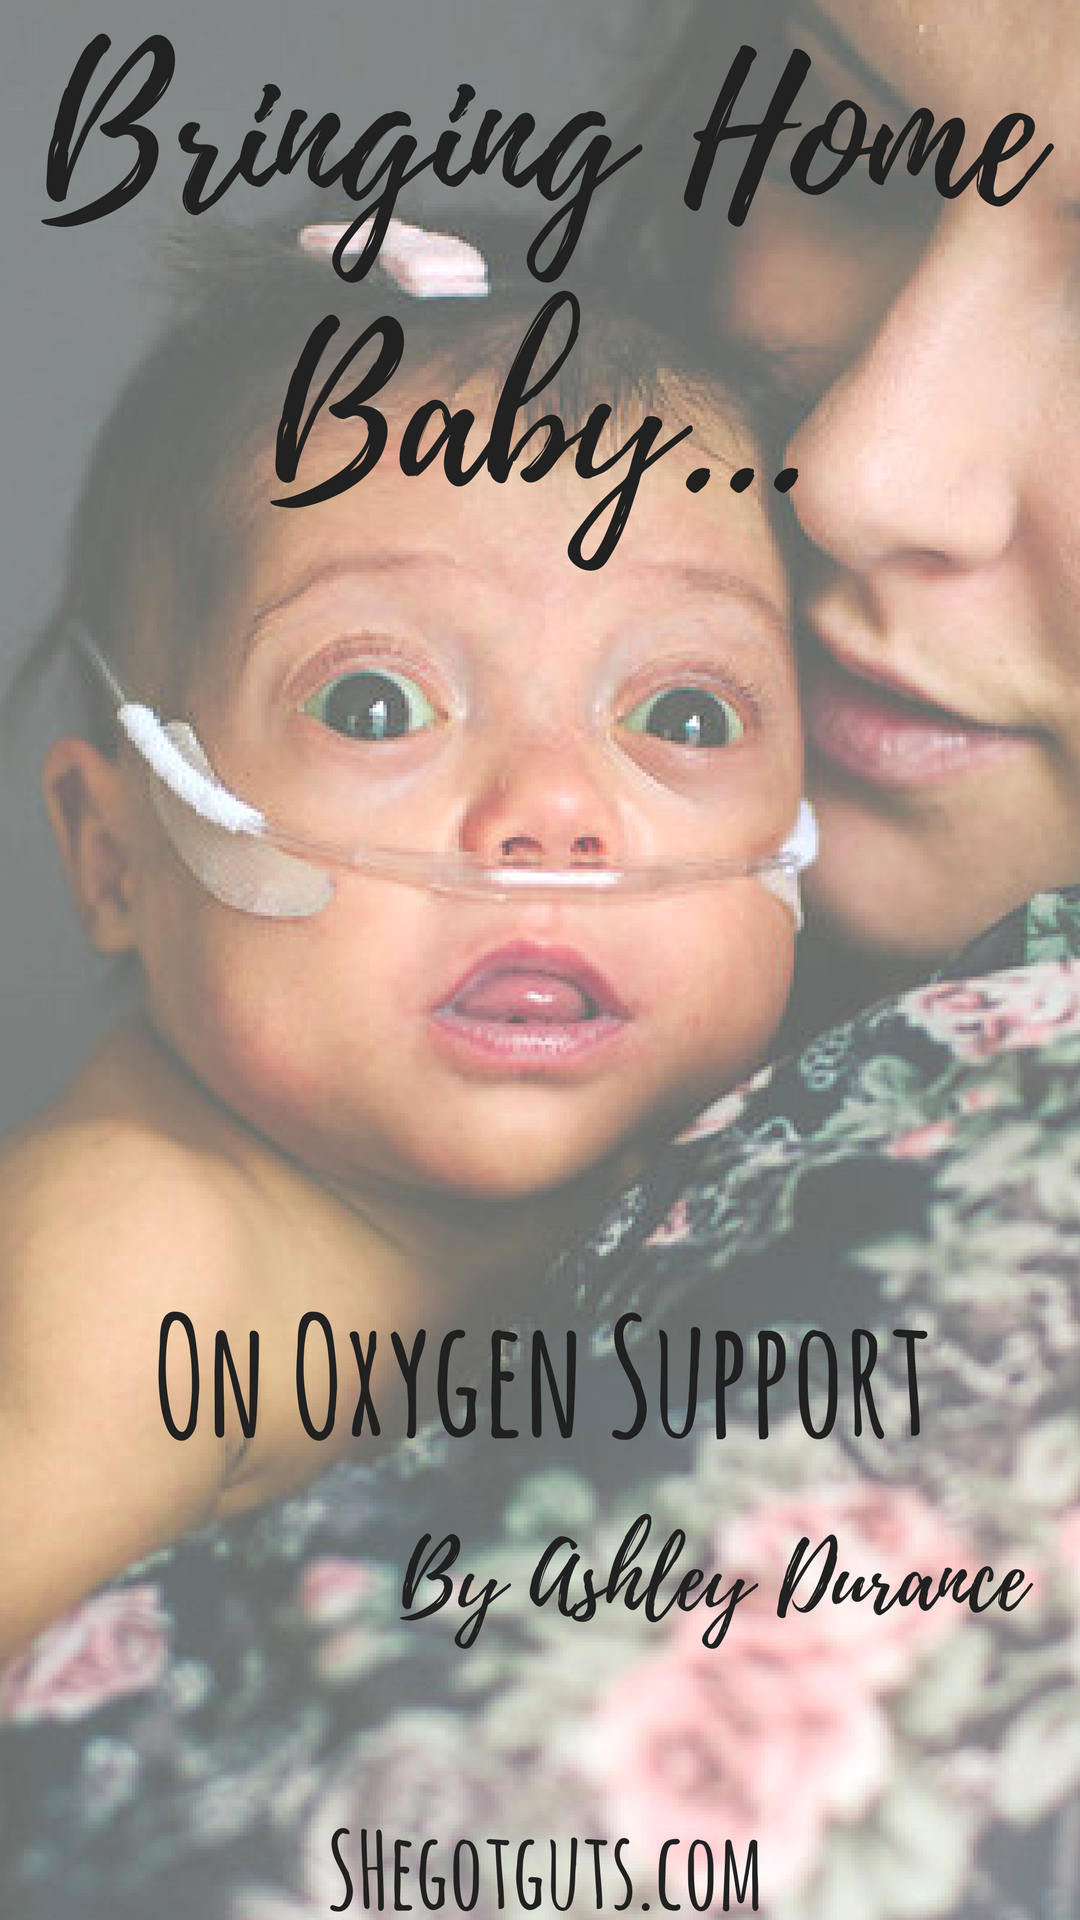 Bringing home baby on oxygen support - shegotguts.com